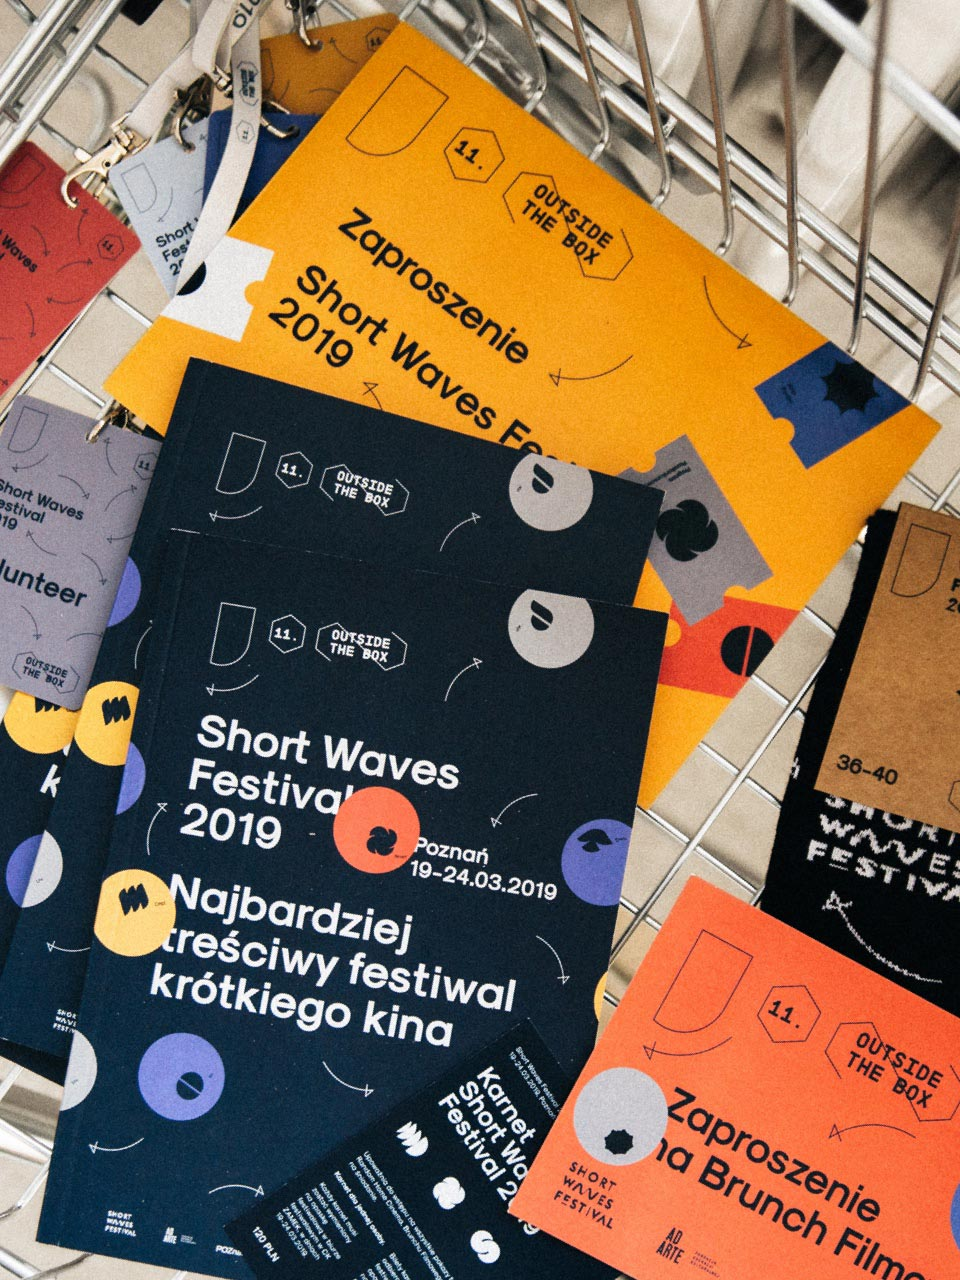 Shortwaves Festival 2019 by Uniforma